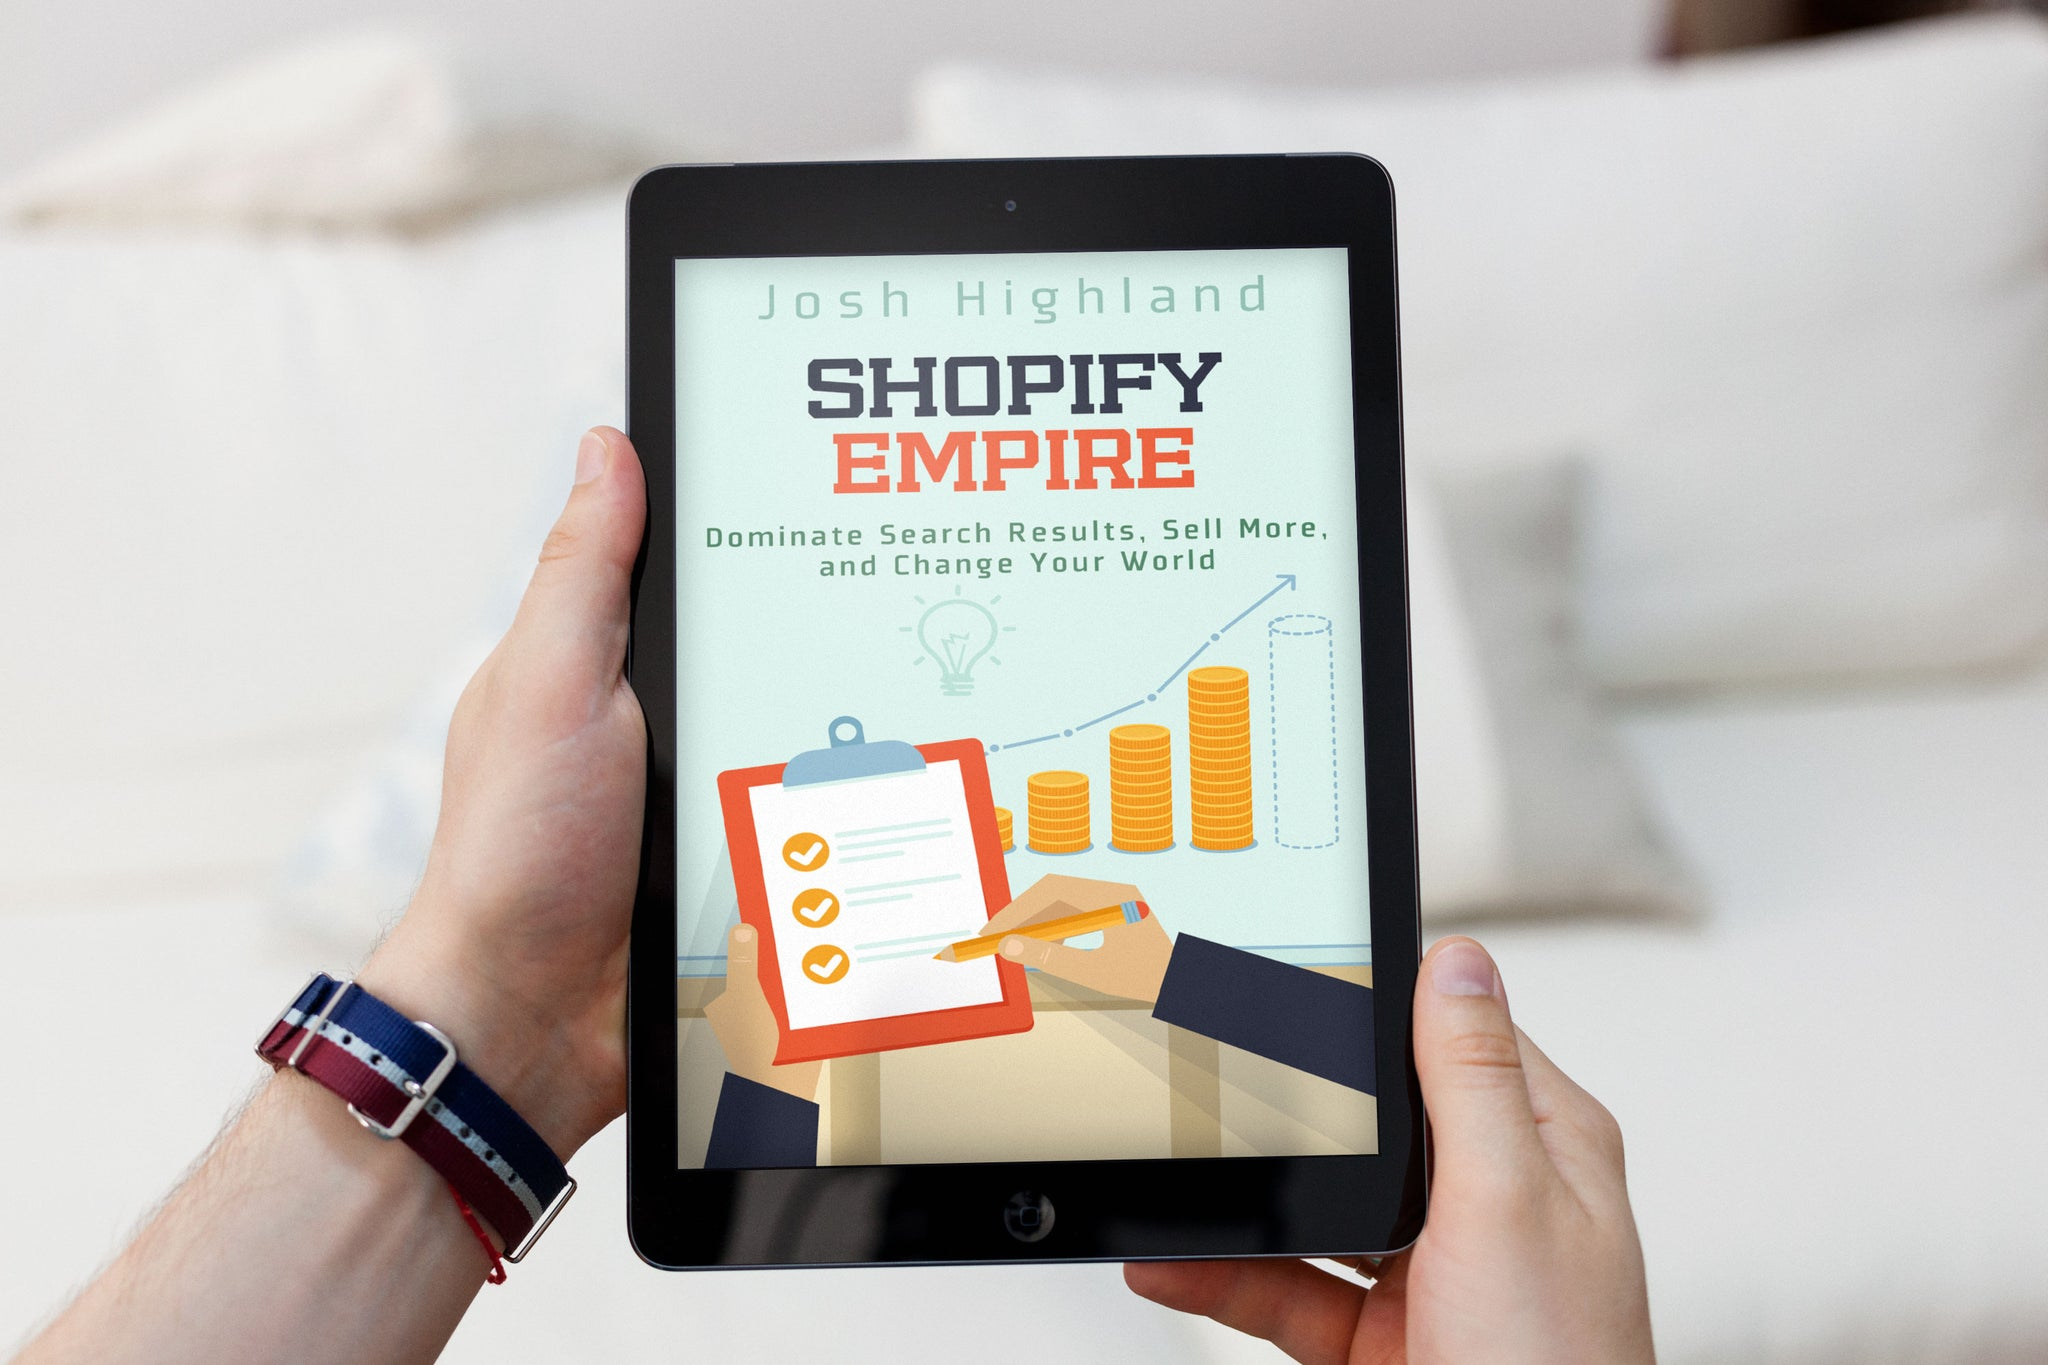 Free PDF sample for Shopify Empire